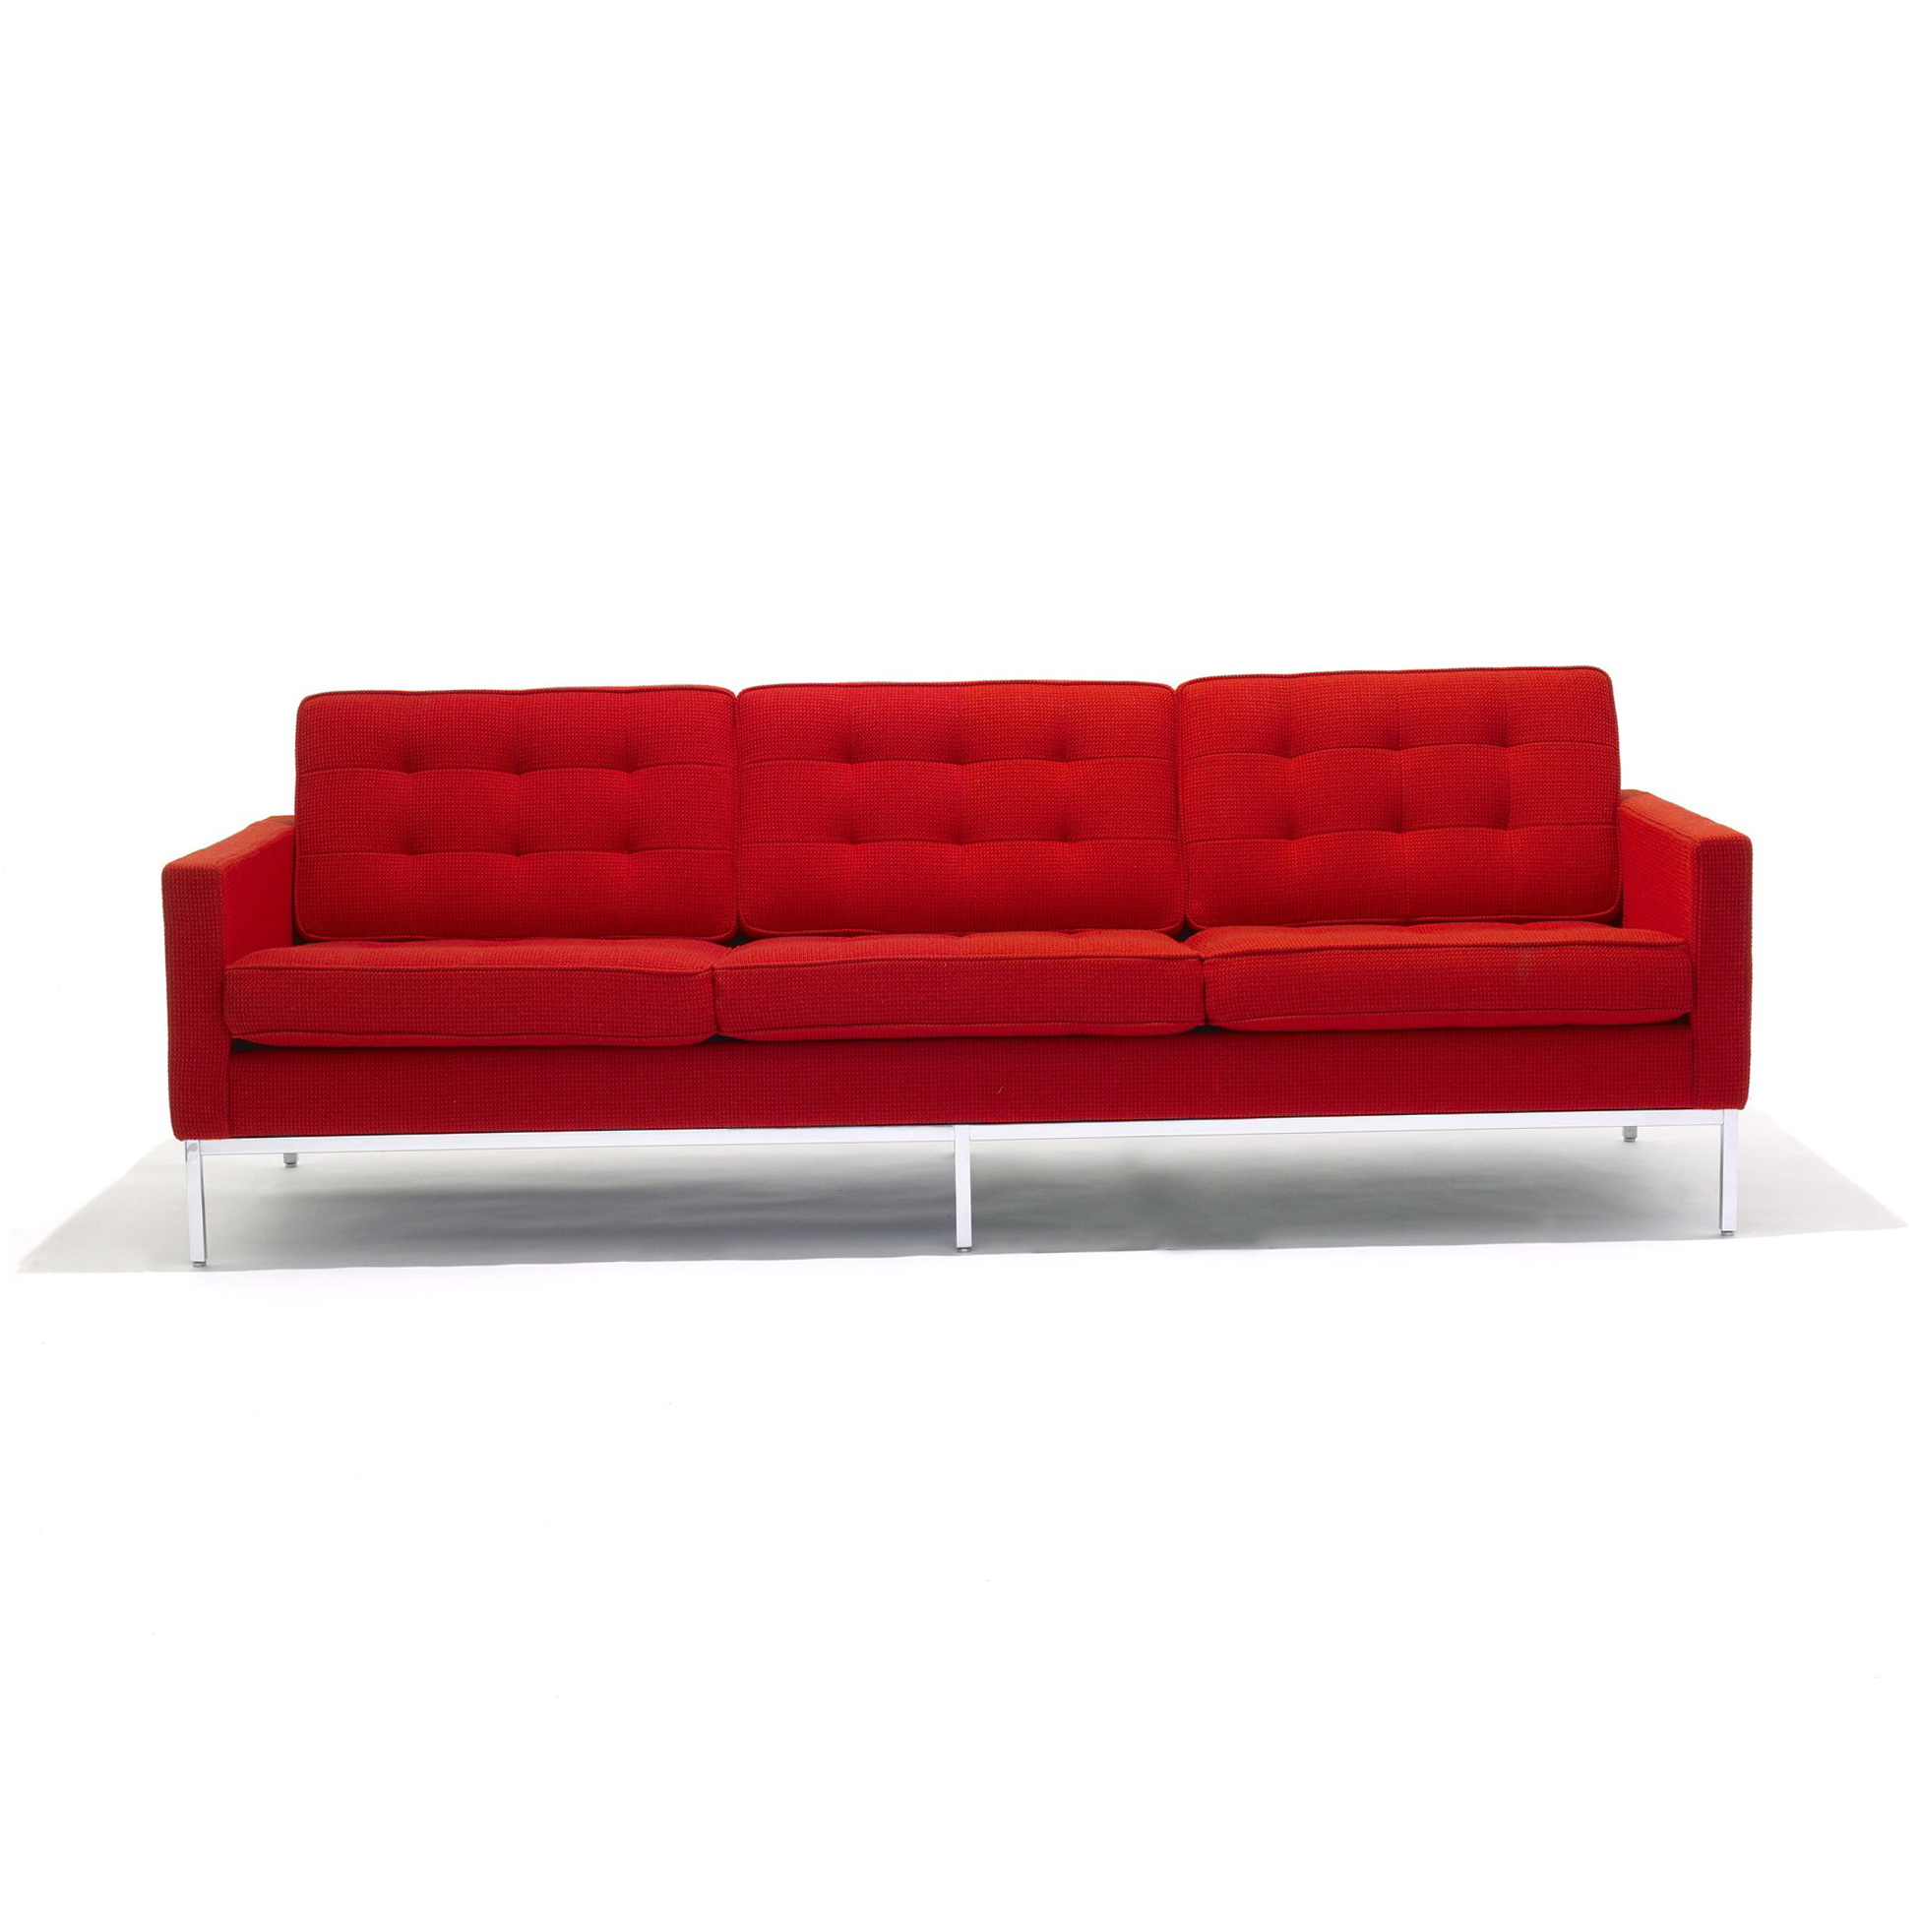 Florence Knoll Sofa Dimensions